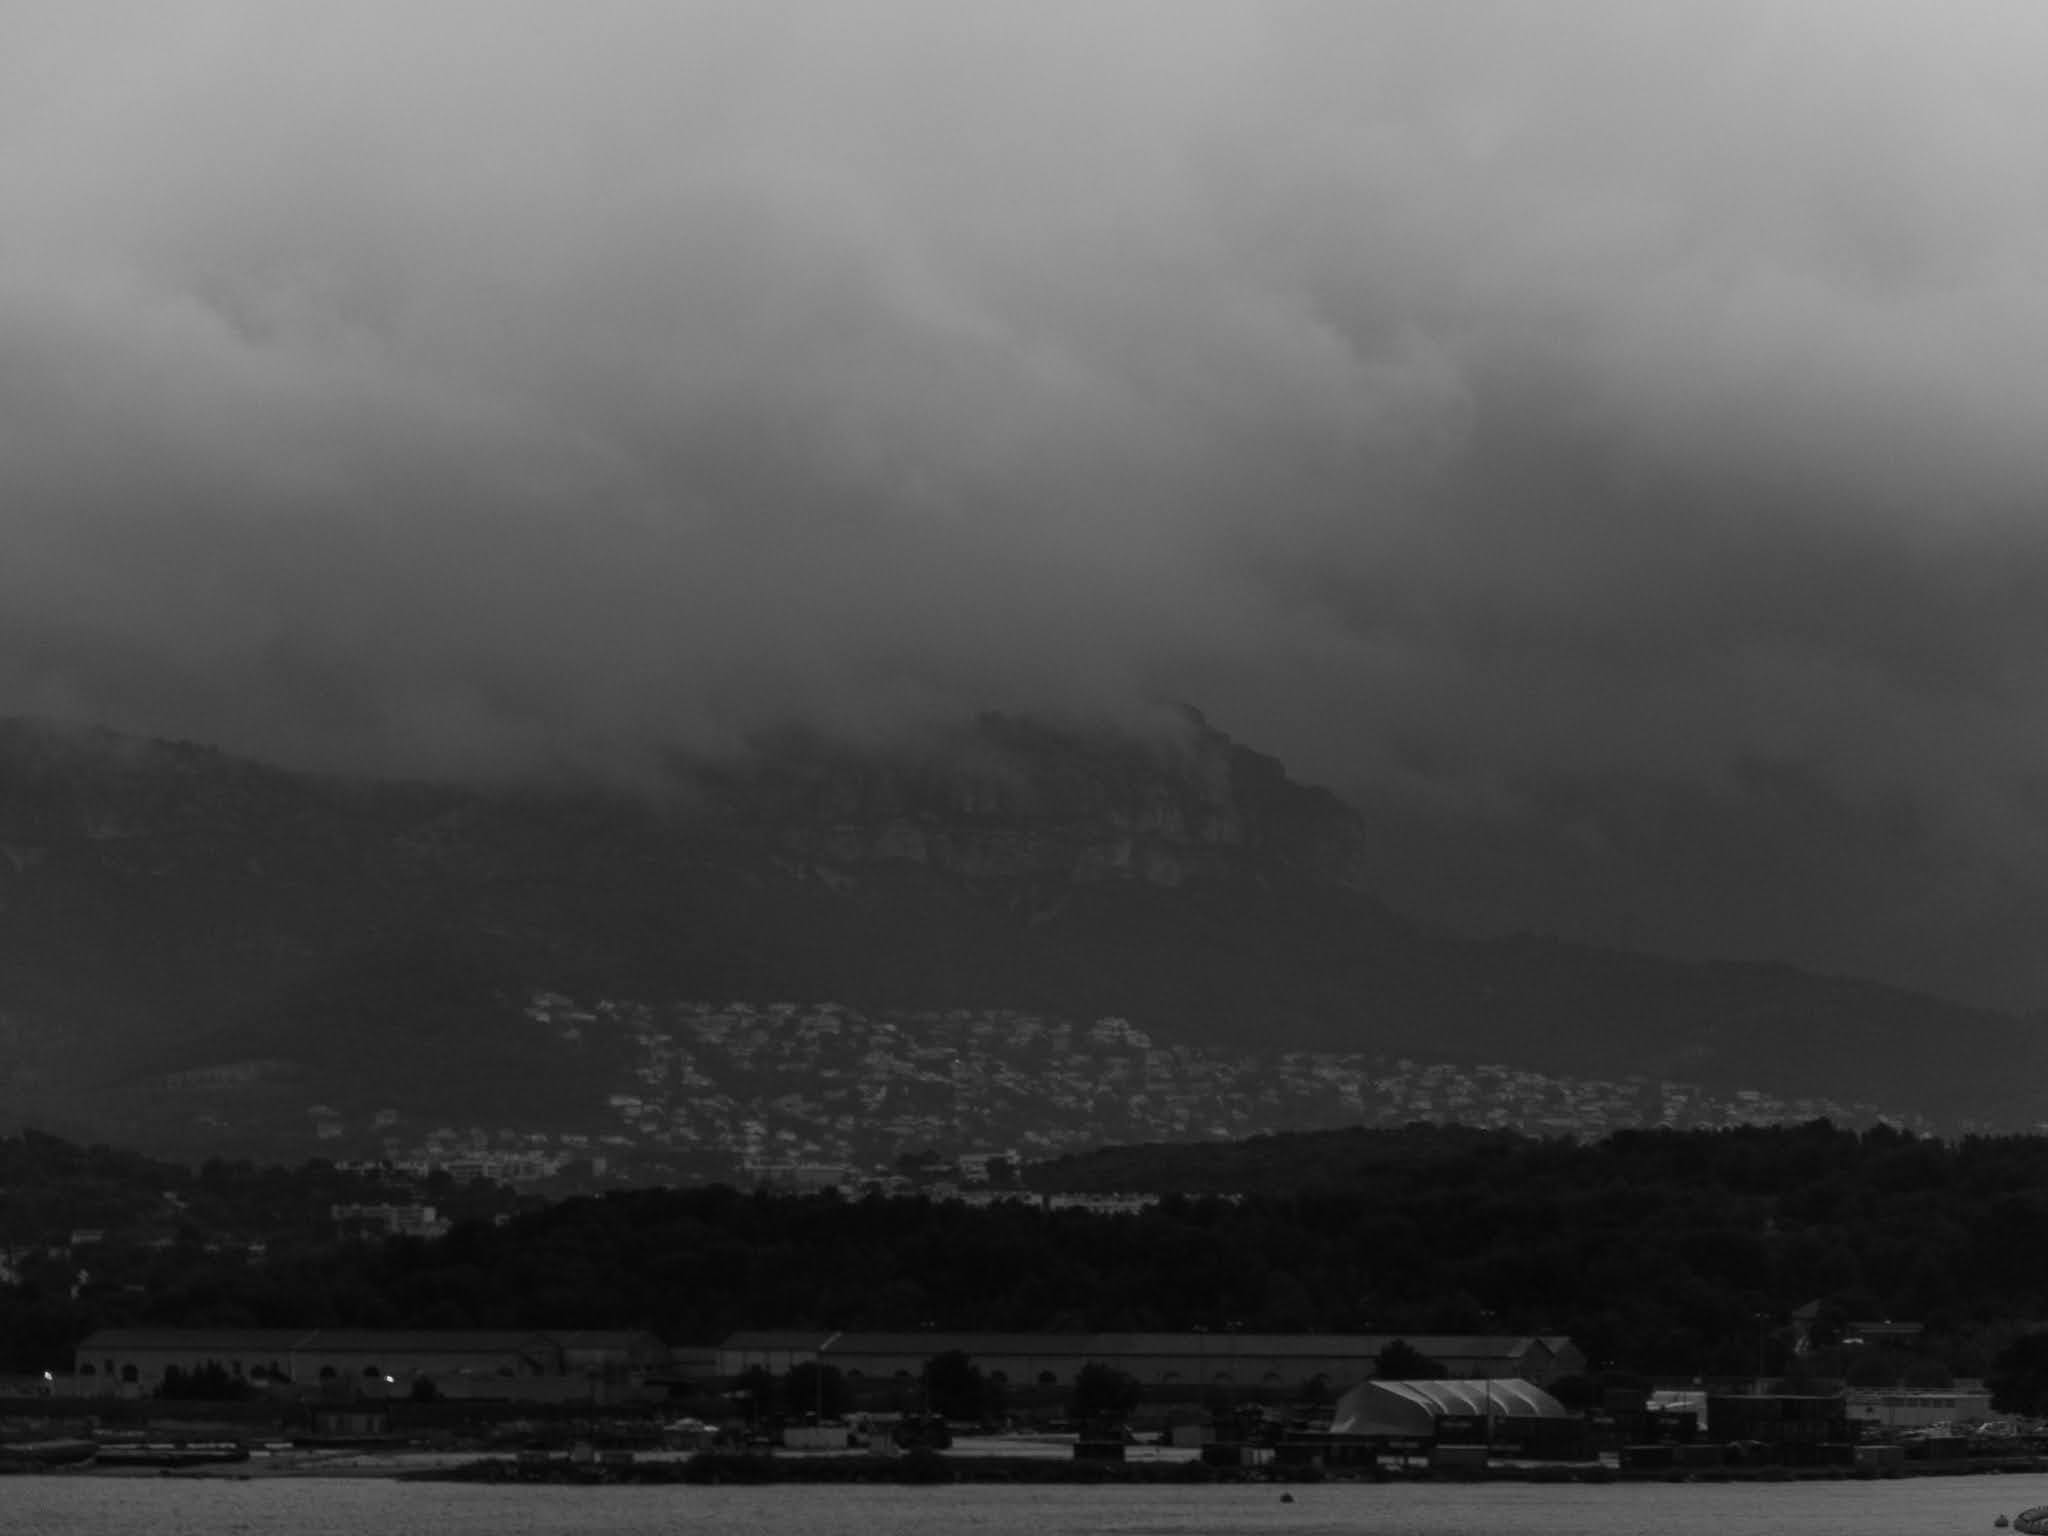 Moutnainside city Toulon on a cloudy morning.